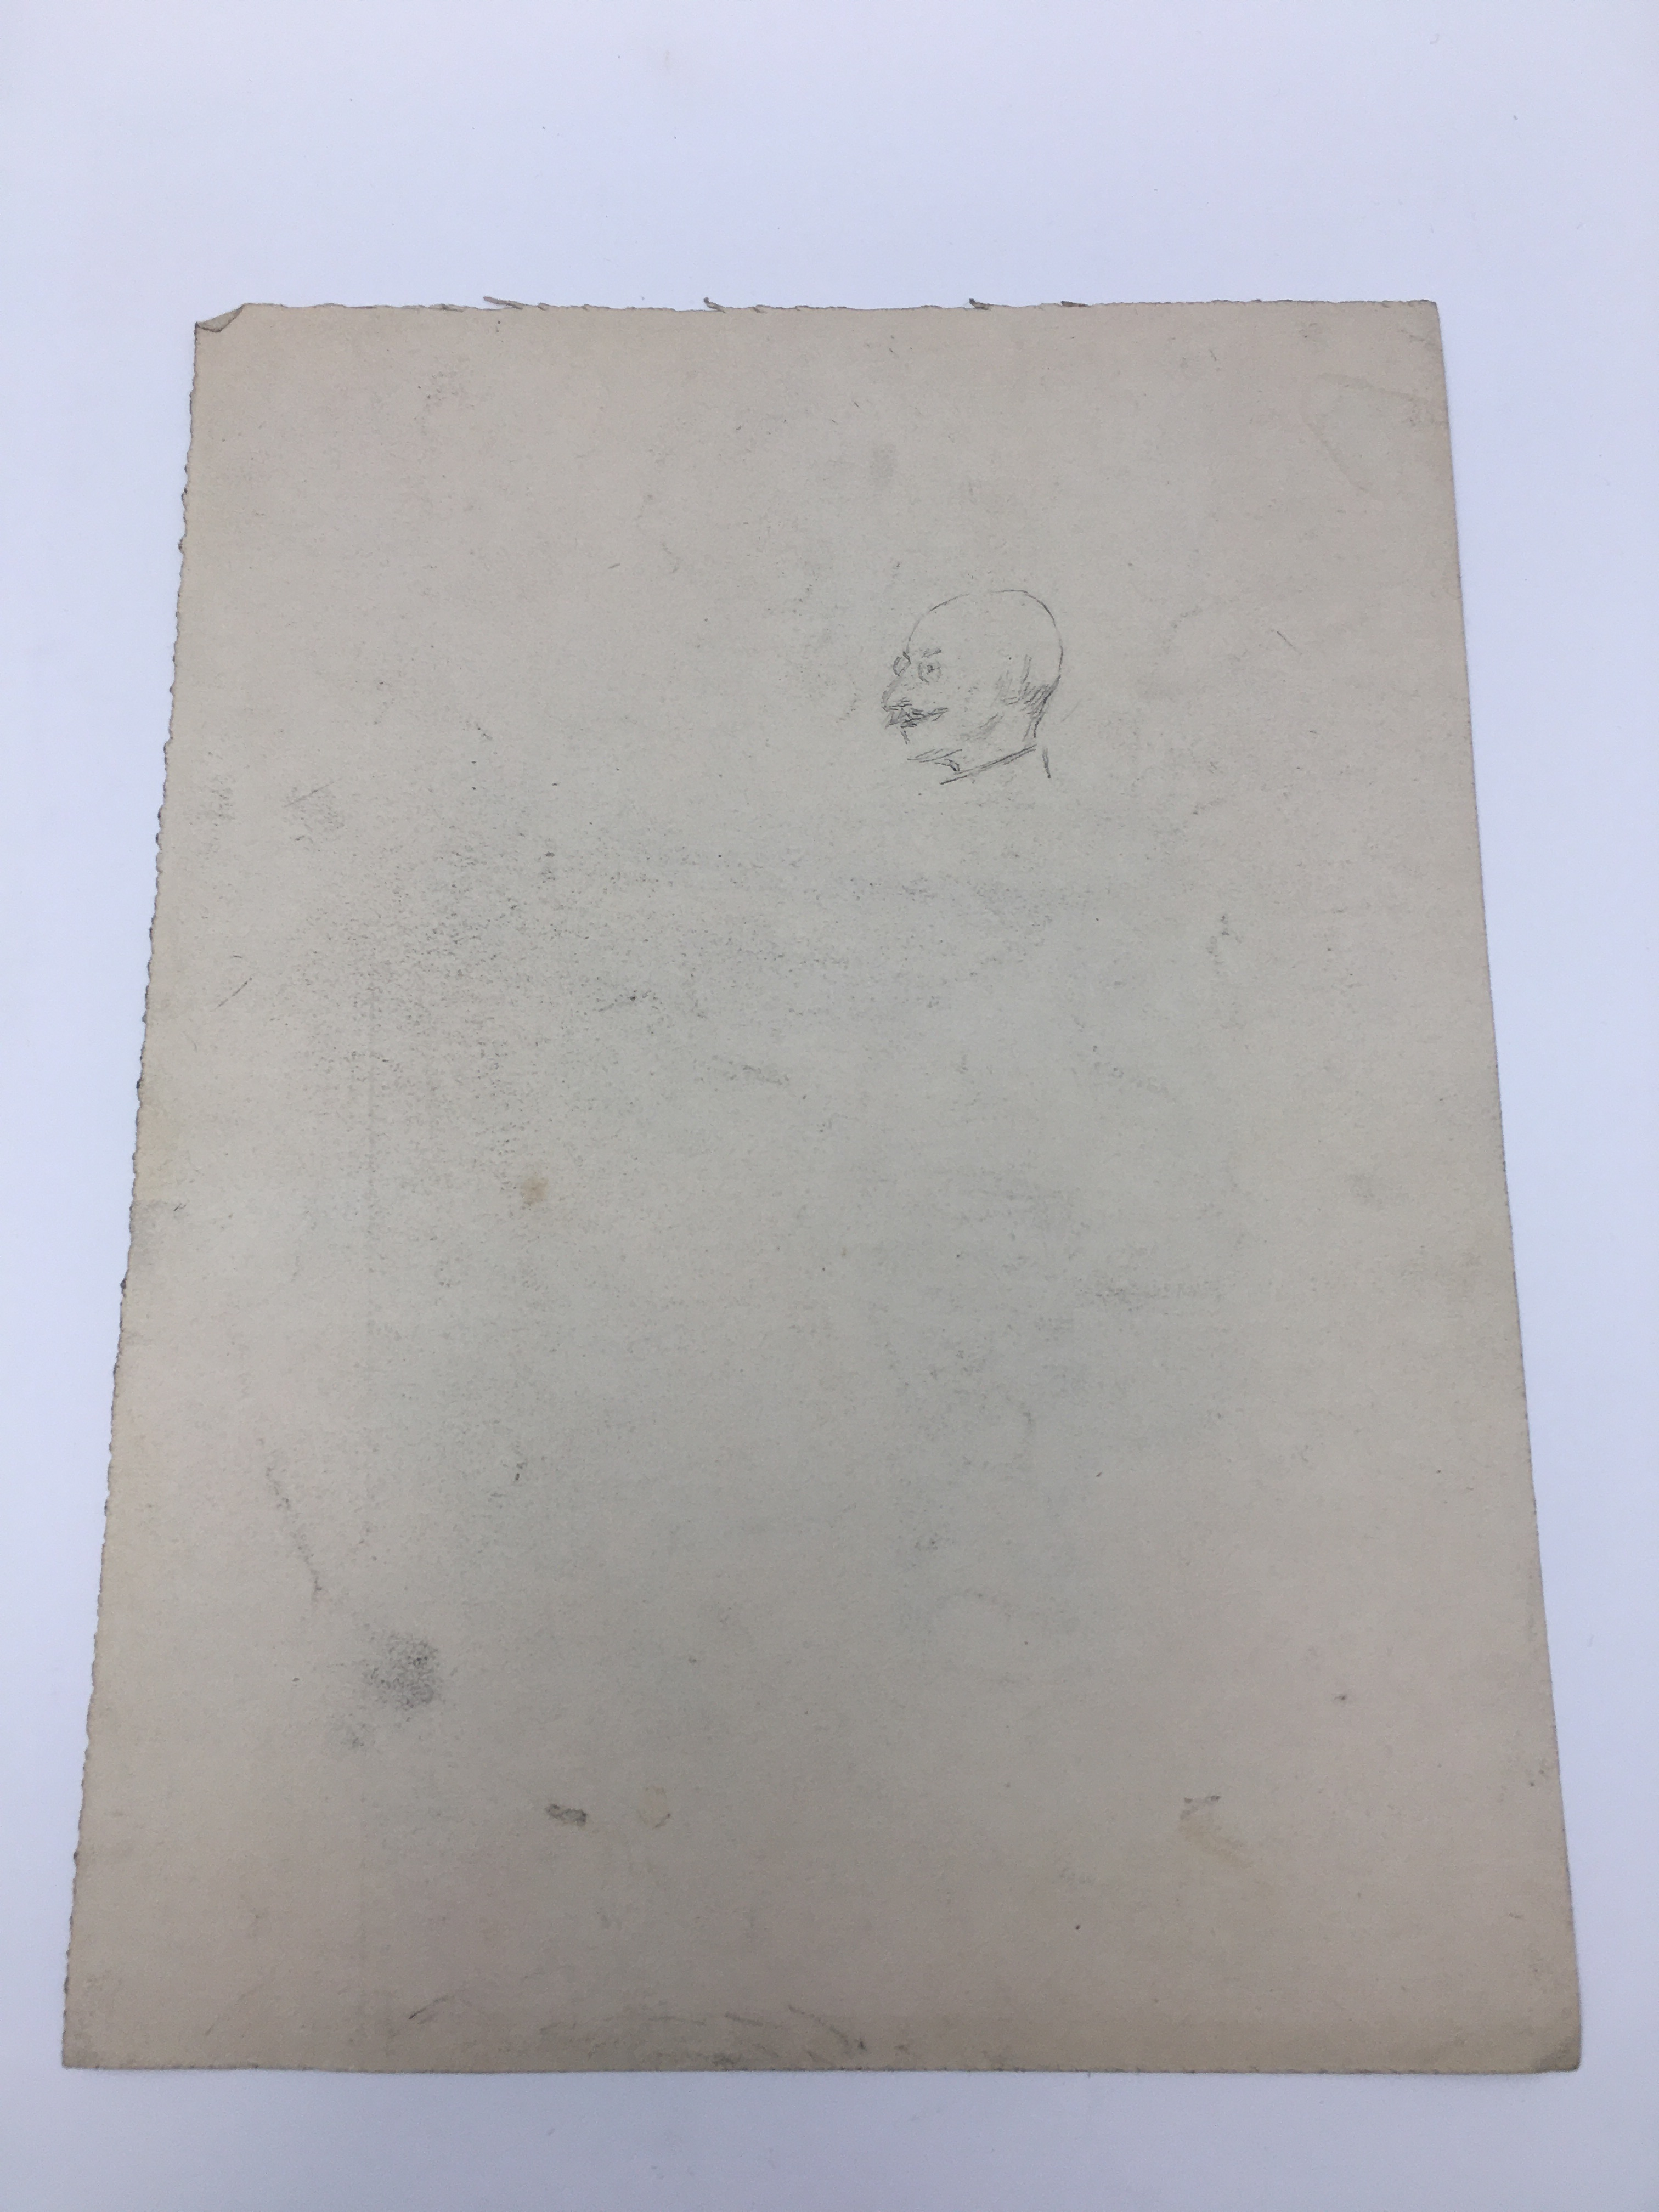 J'Accuse Newspaper, Emile Zola Quote, Signed Dreyfus Portrait, Rare Trial Drawings & Schwartzkoppen - Image 18 of 74